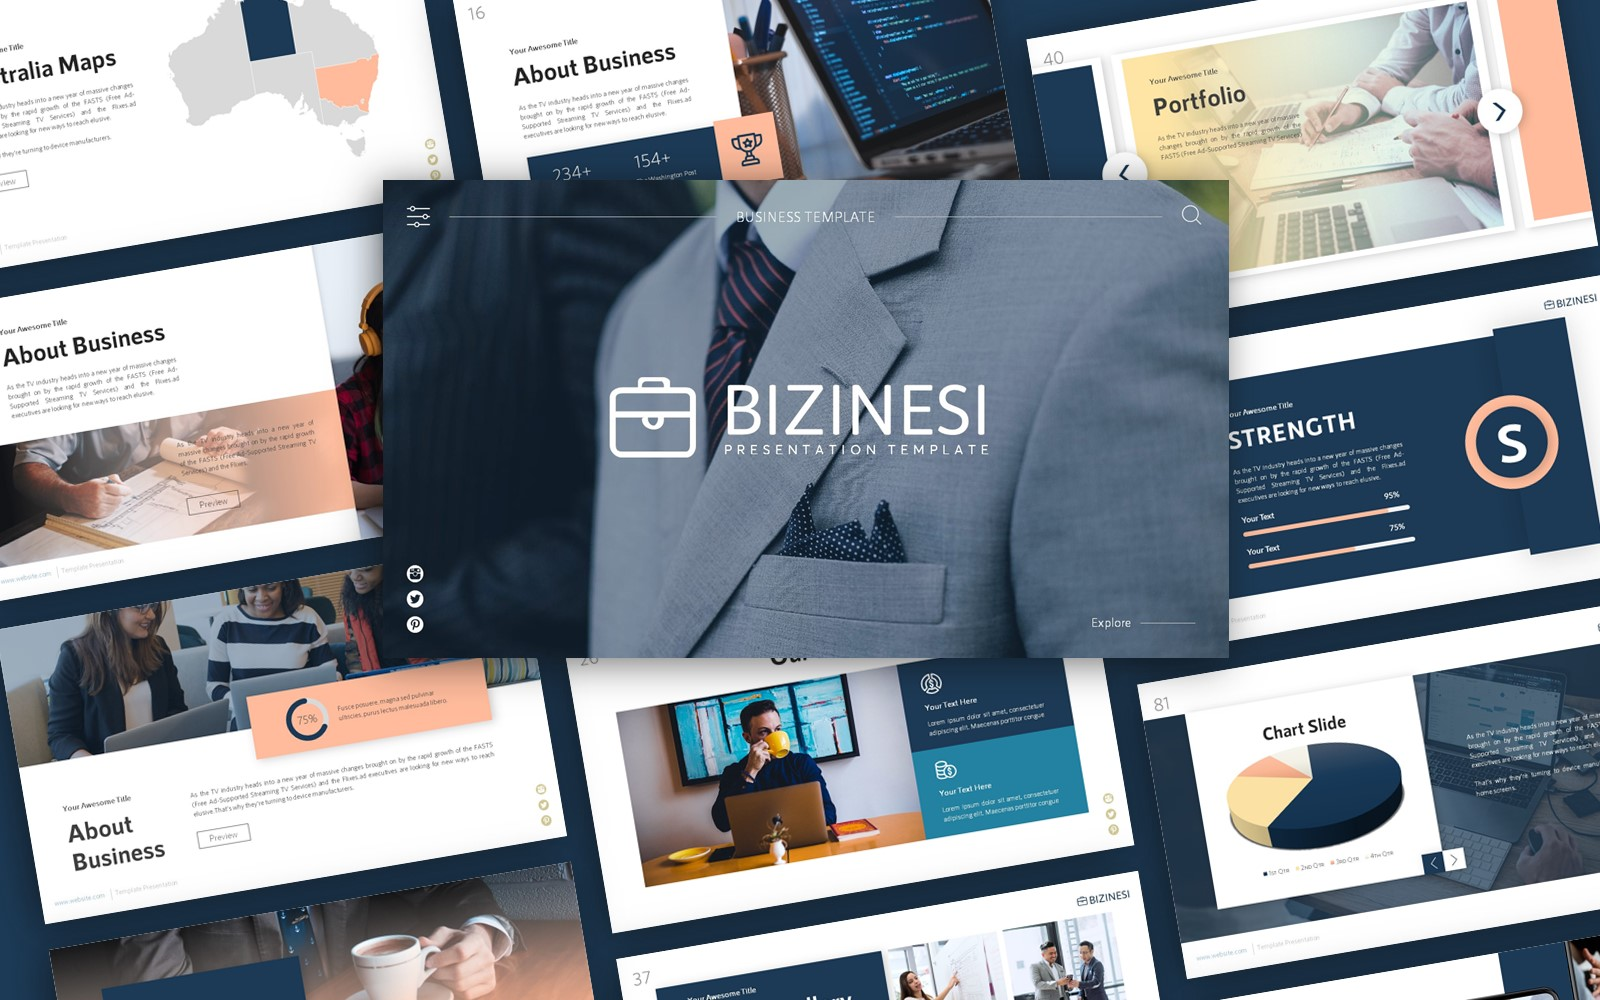 Bizinesi Business Presentation PowerPoint Template